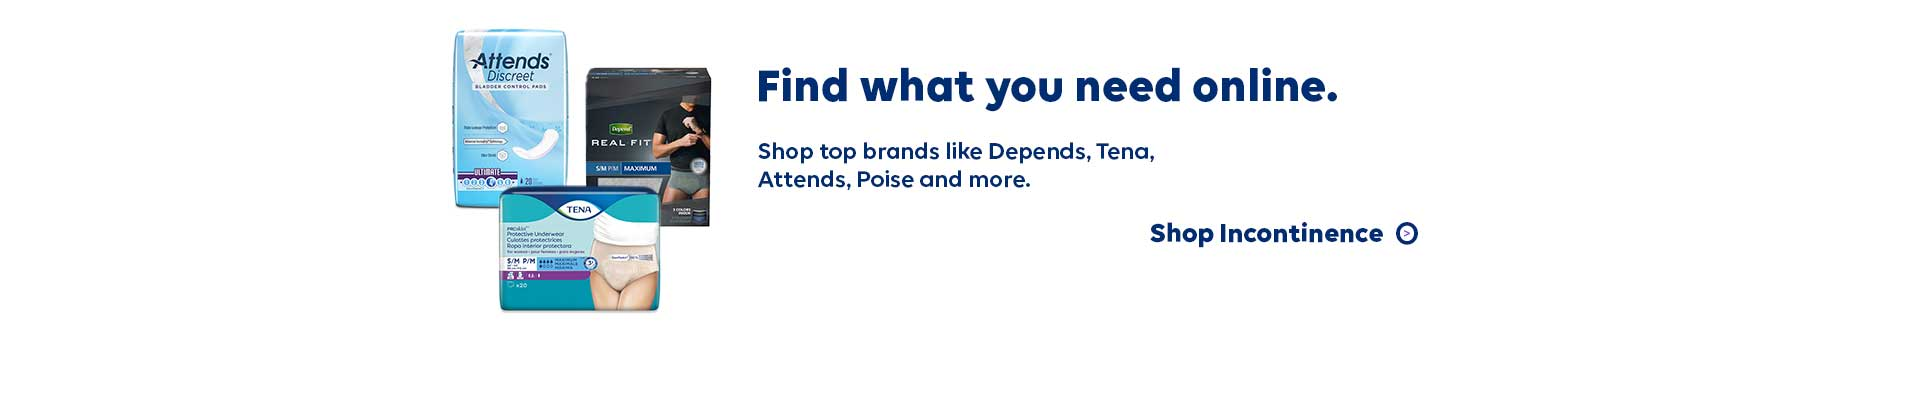 Find what you need online. Shop top brands like Depends, Tena, Attends, Poise and more. Shop Incontinence.